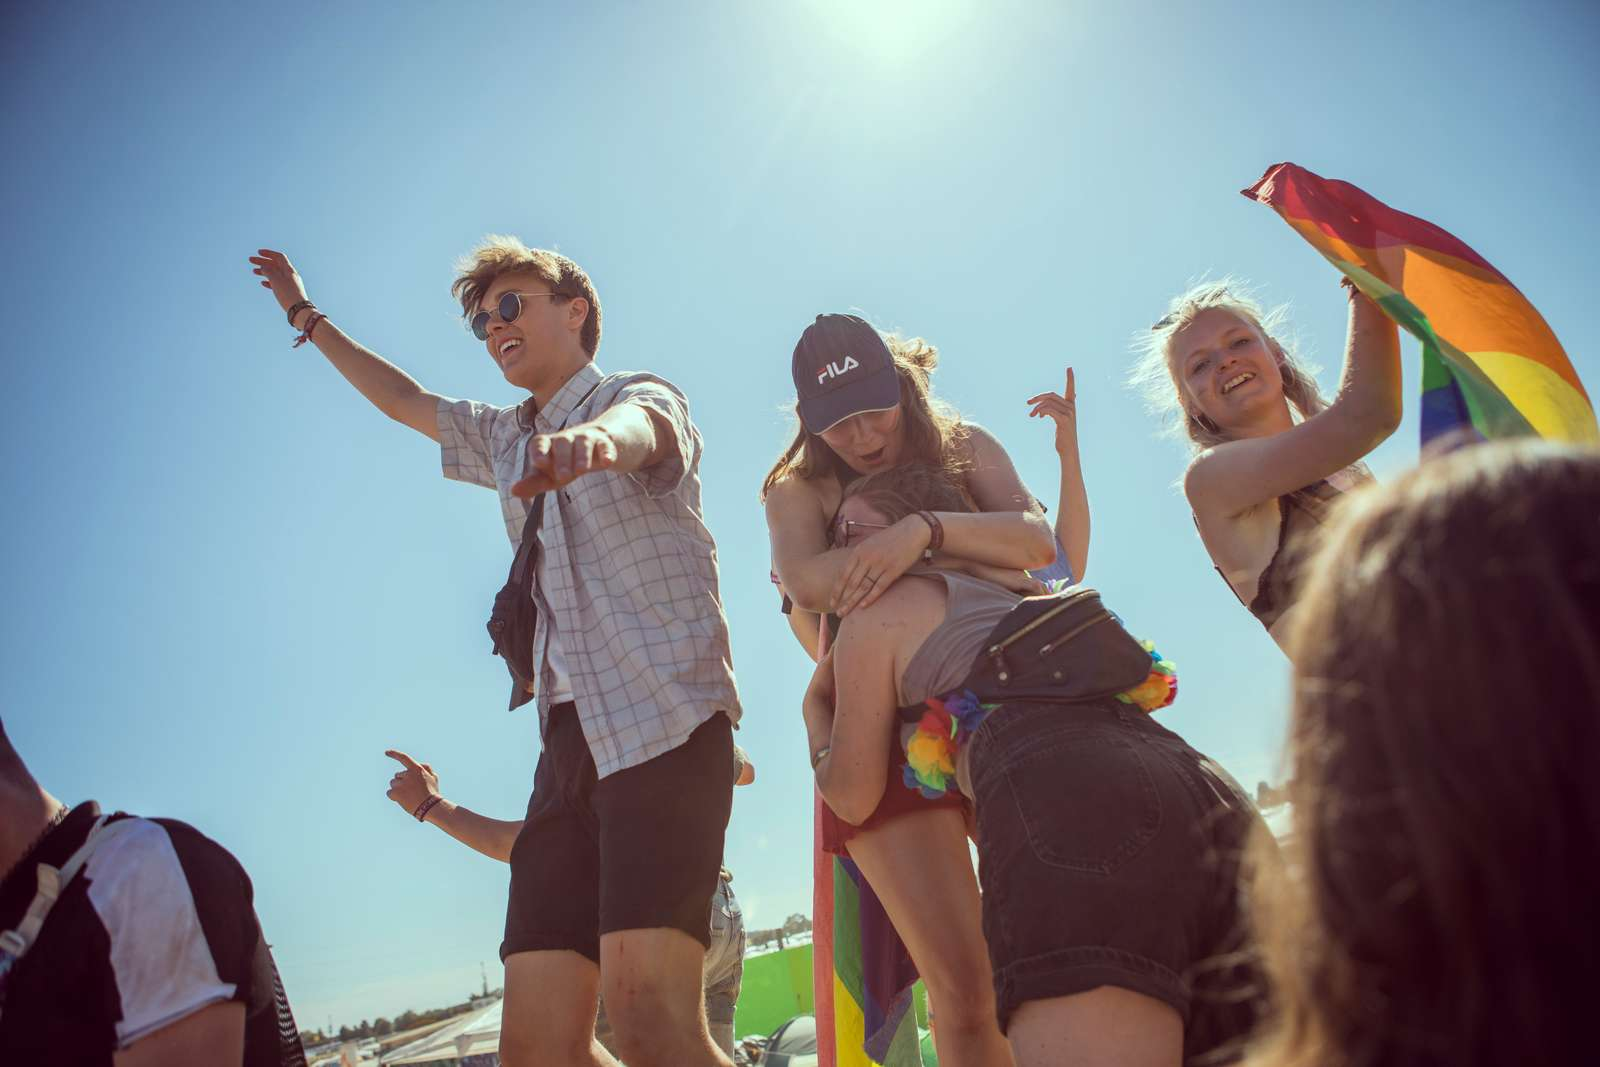 Whores in Roskilde